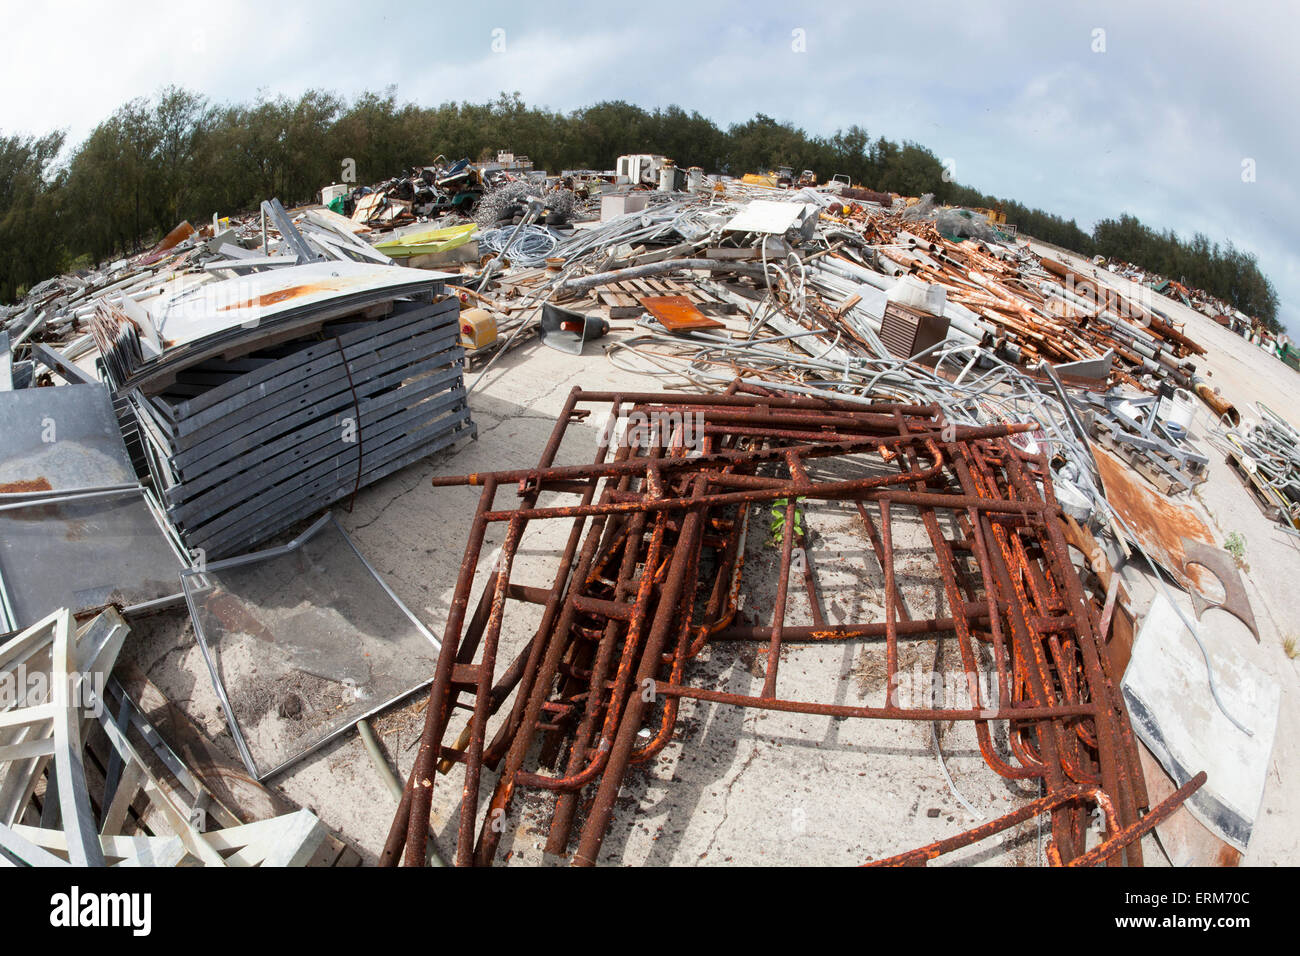 Junkyard of discarded items to be cut up and shipped off a remote North Pacific island as scrap - Stock Image